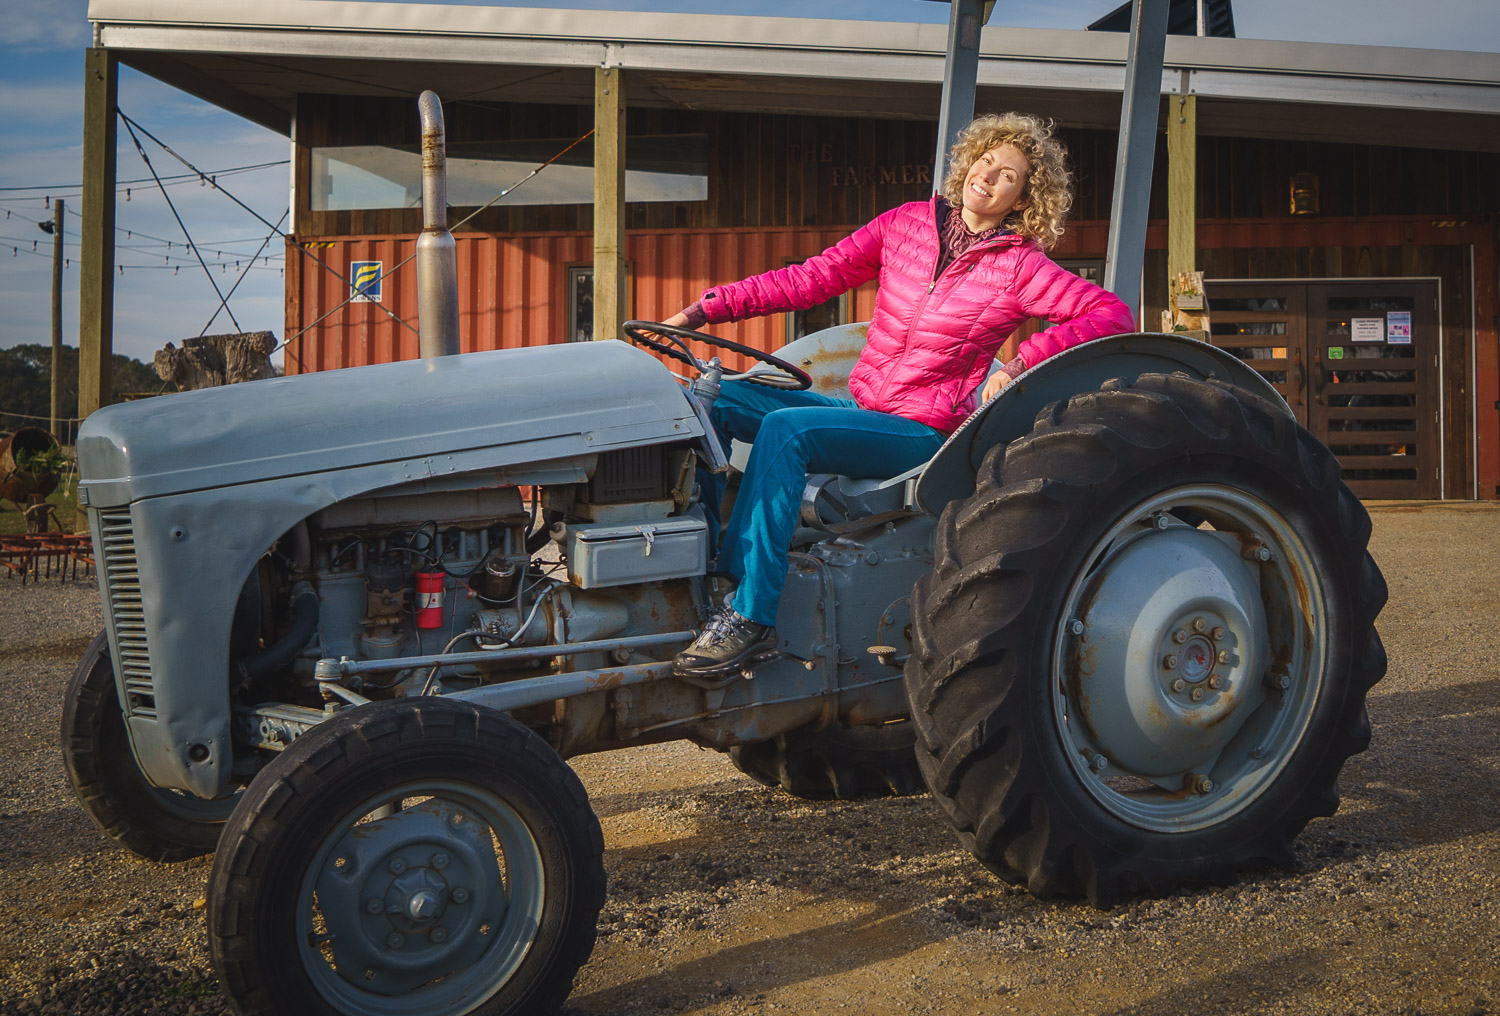 Dina on tractor